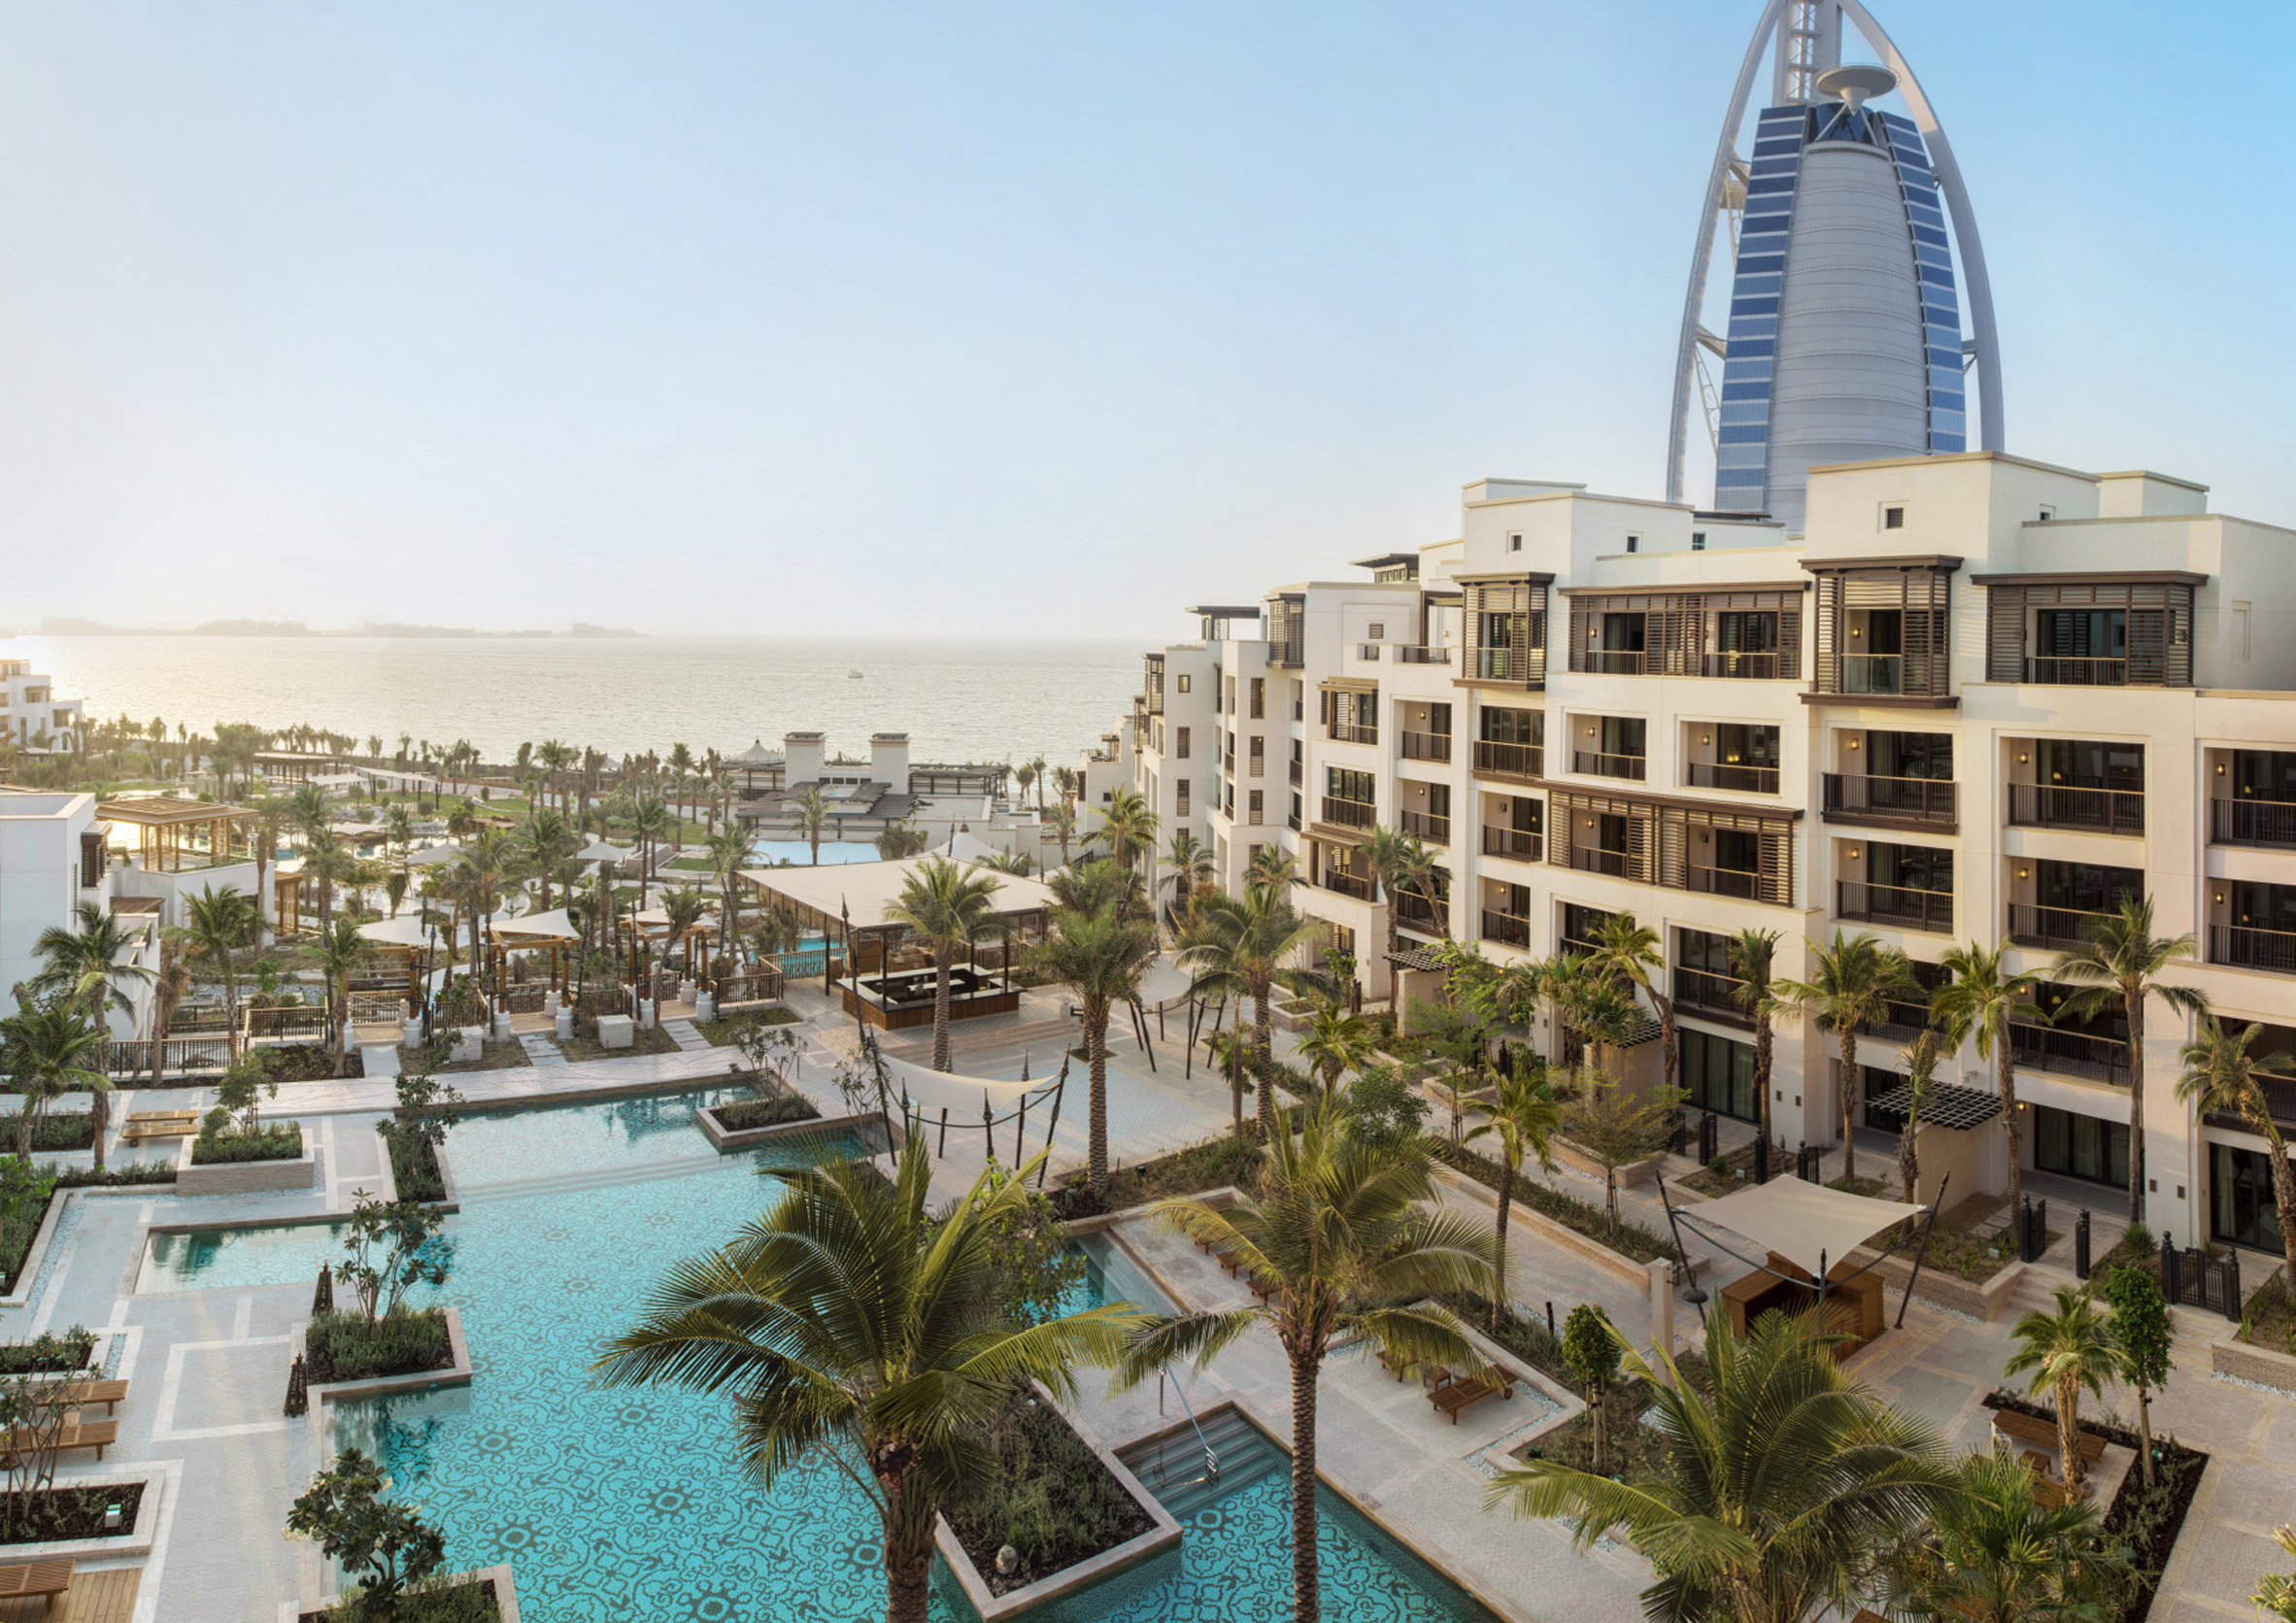 AHEAD Middle East and Africa announces 2017 winners of hotel design awards